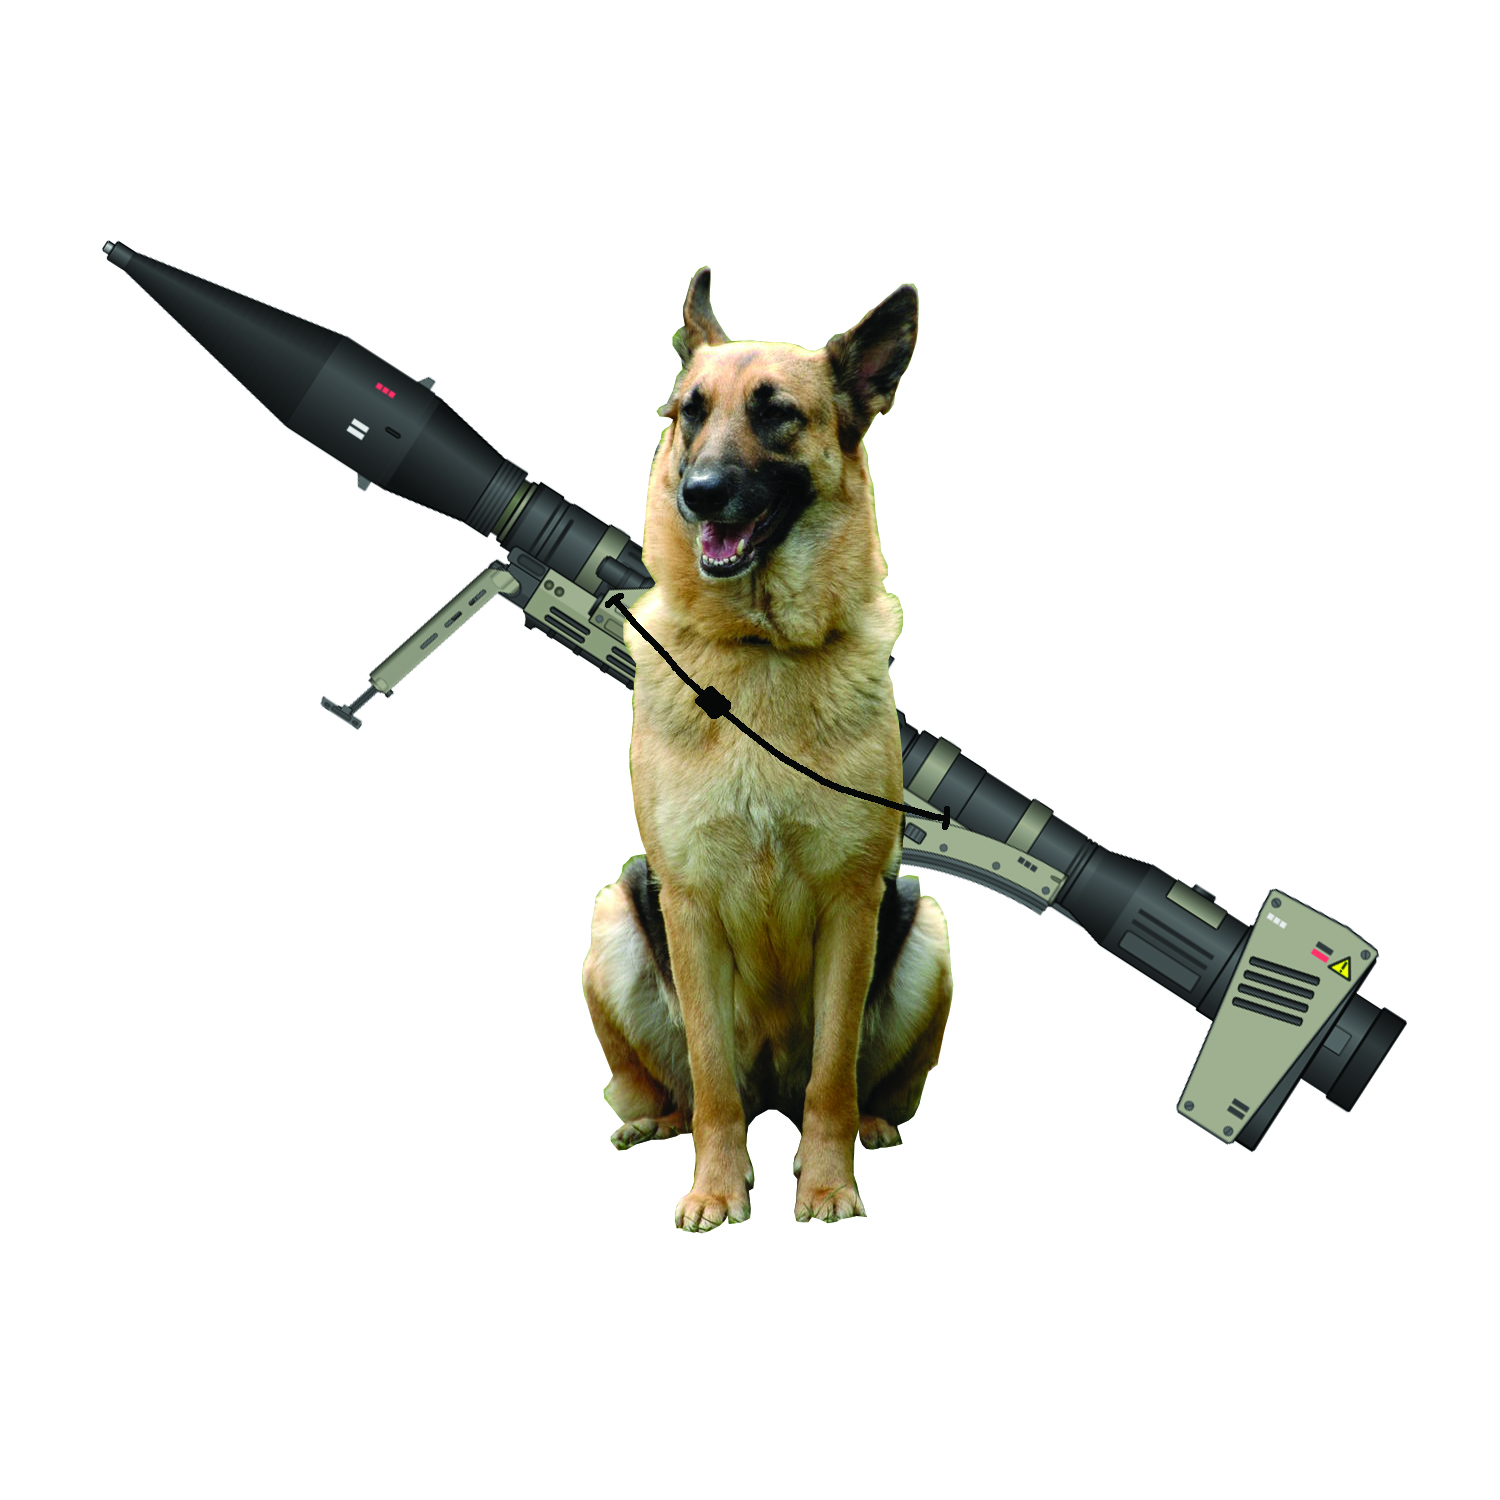 A dog with a bazooka attached to its back